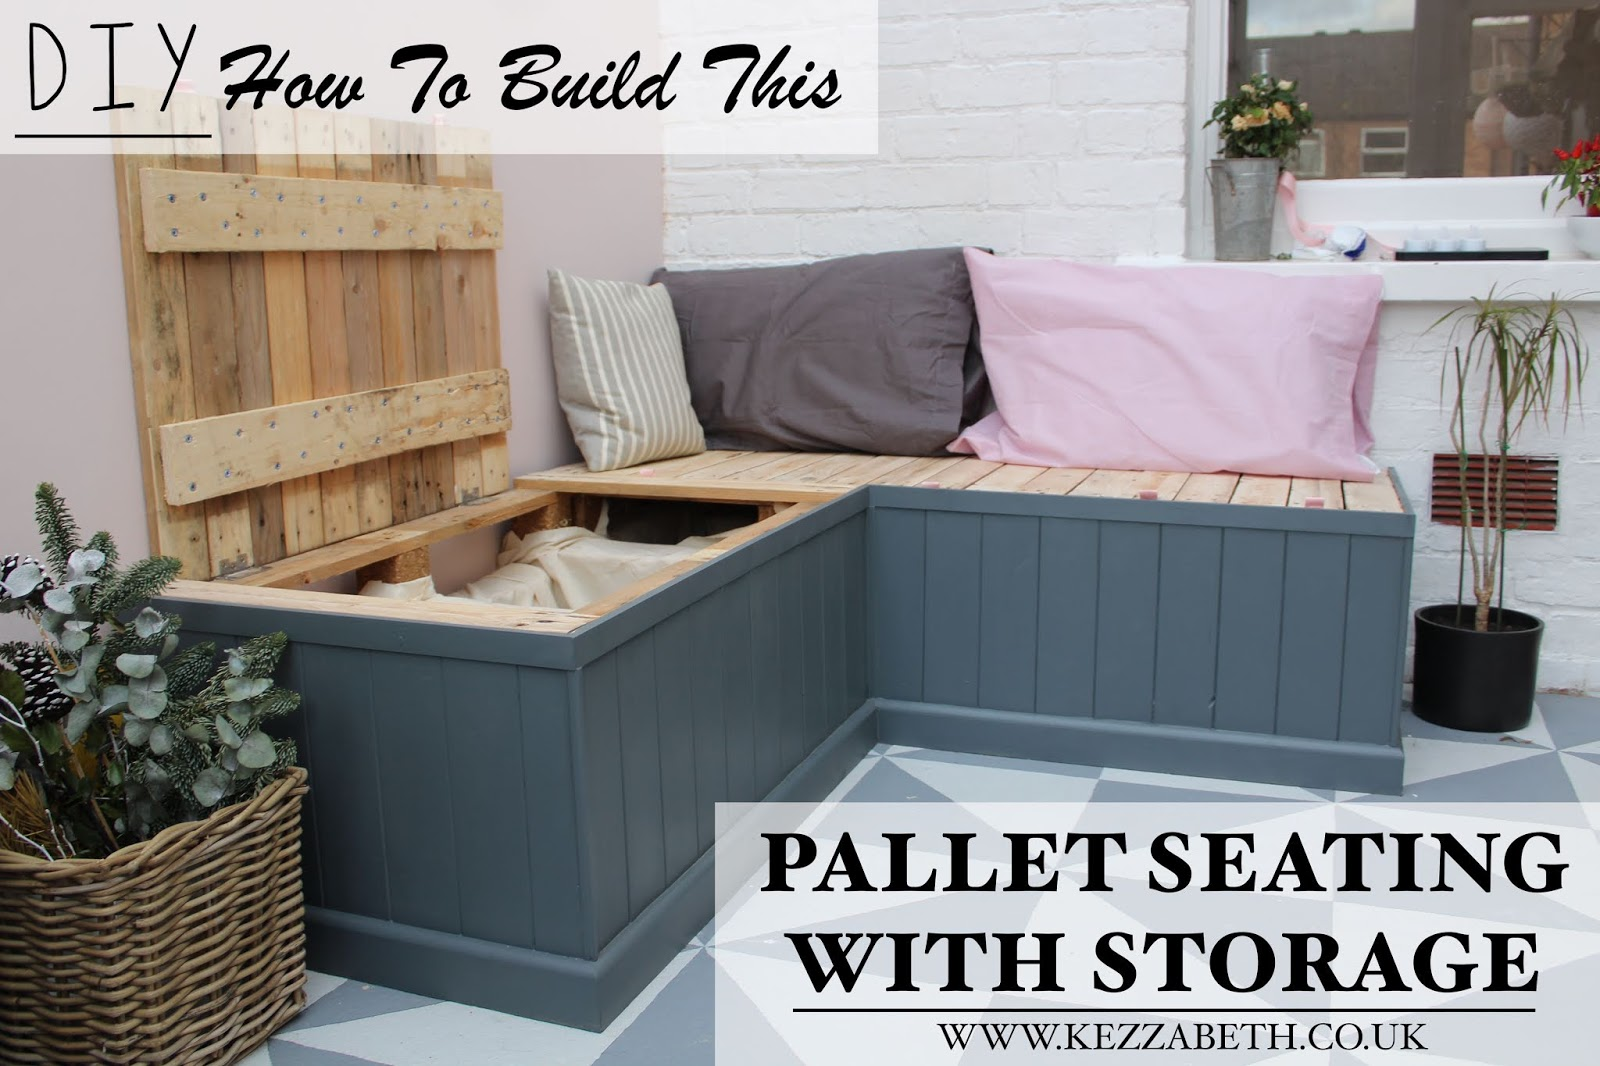 DIY pallet seating with storage